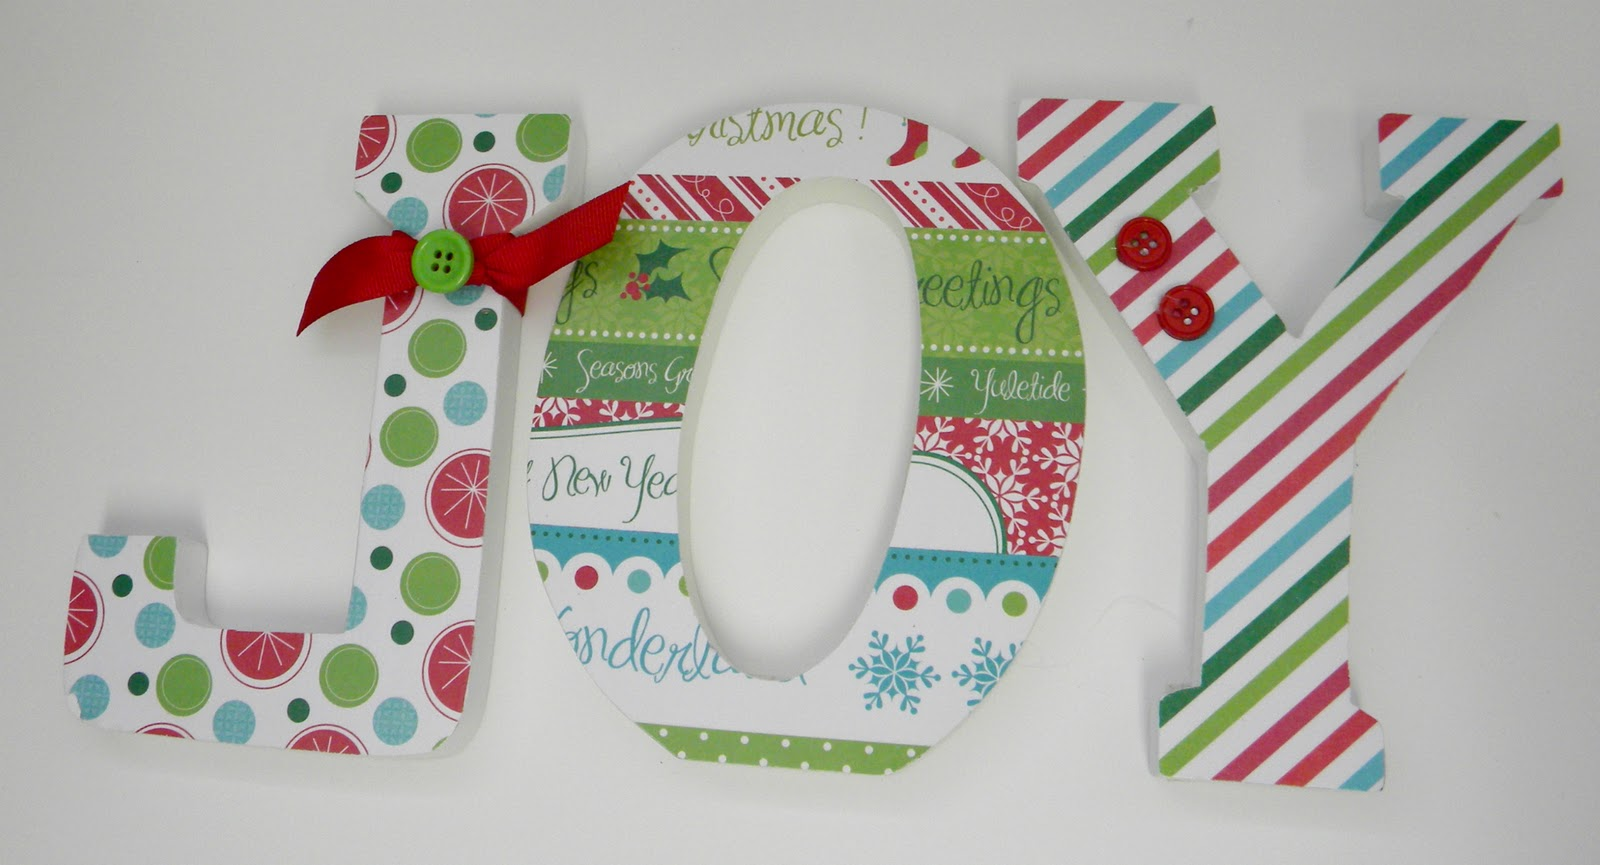 Dwelling holiday home decor wooden letters for Decoration 11 letters